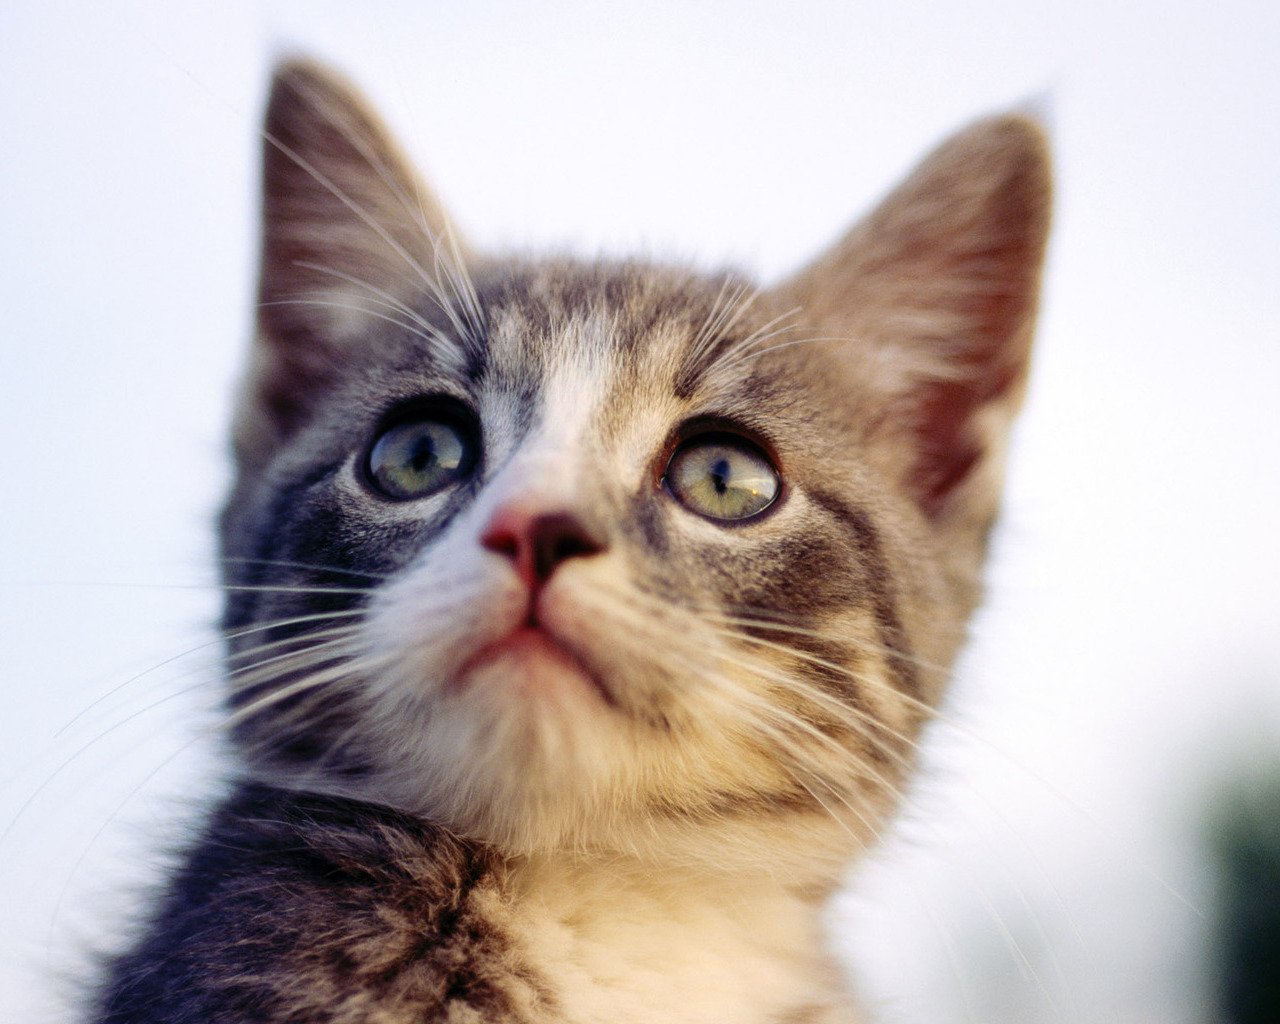 Cute Animated Fairy Wallpapers Strictly Wallpaper Wallpapers For Cat Lovers 2